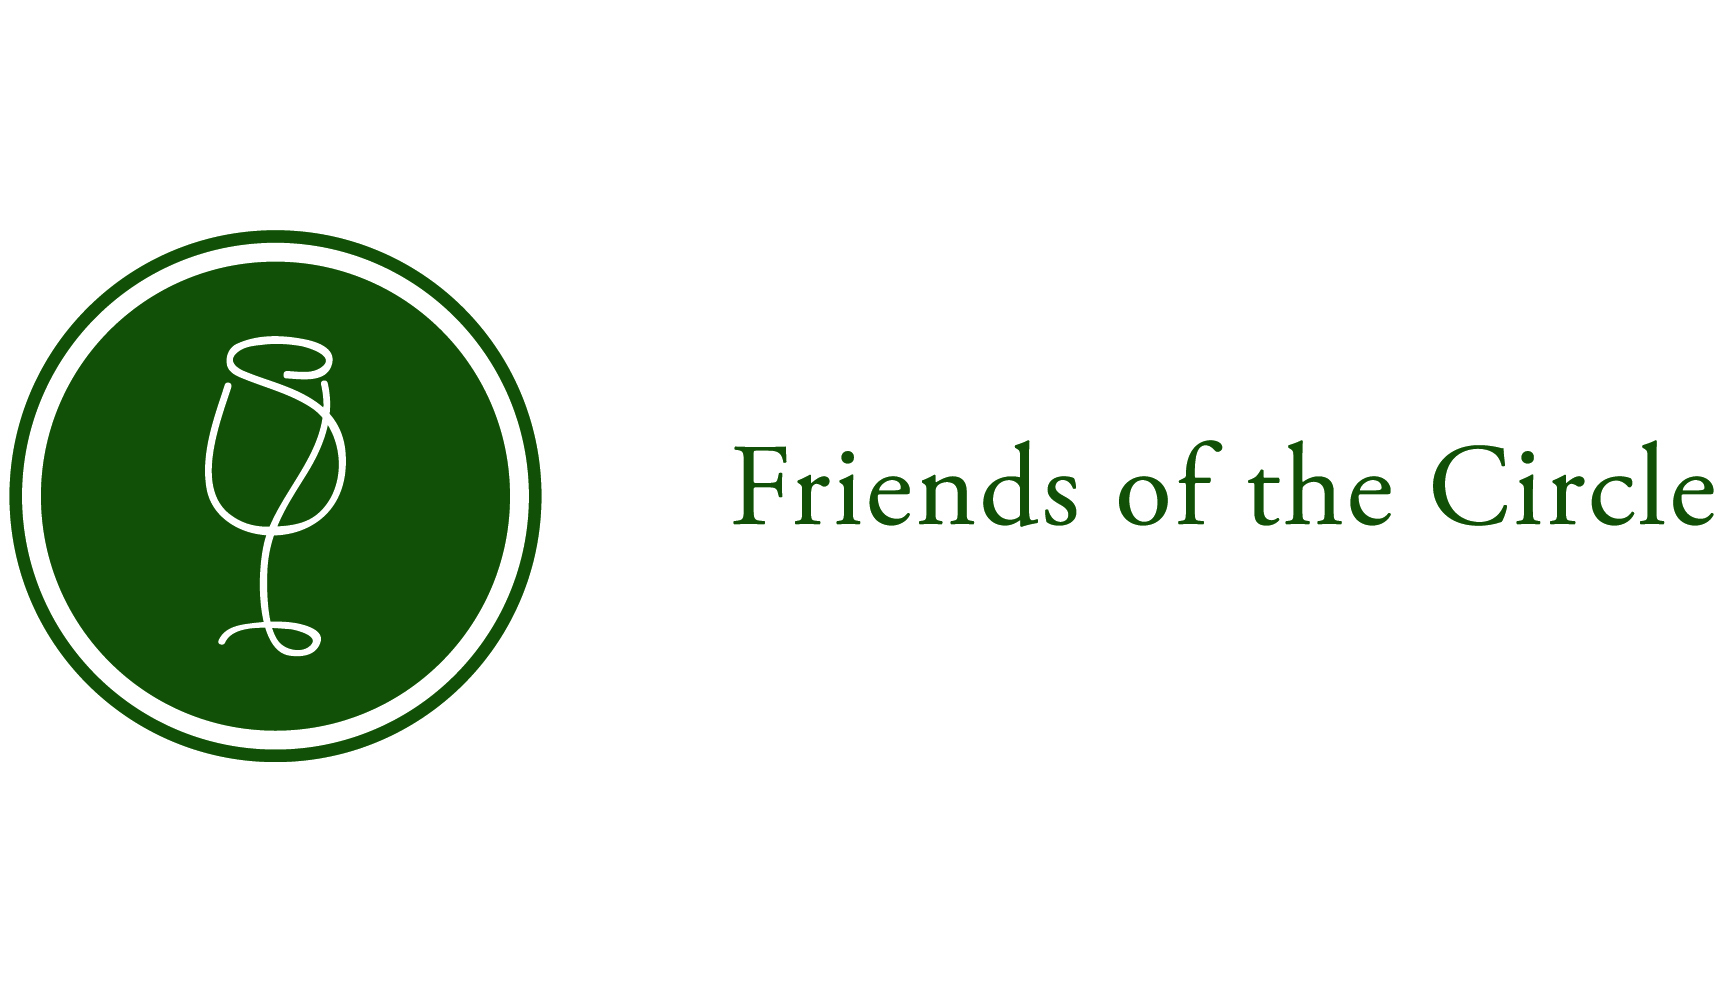 Friends of the Circle